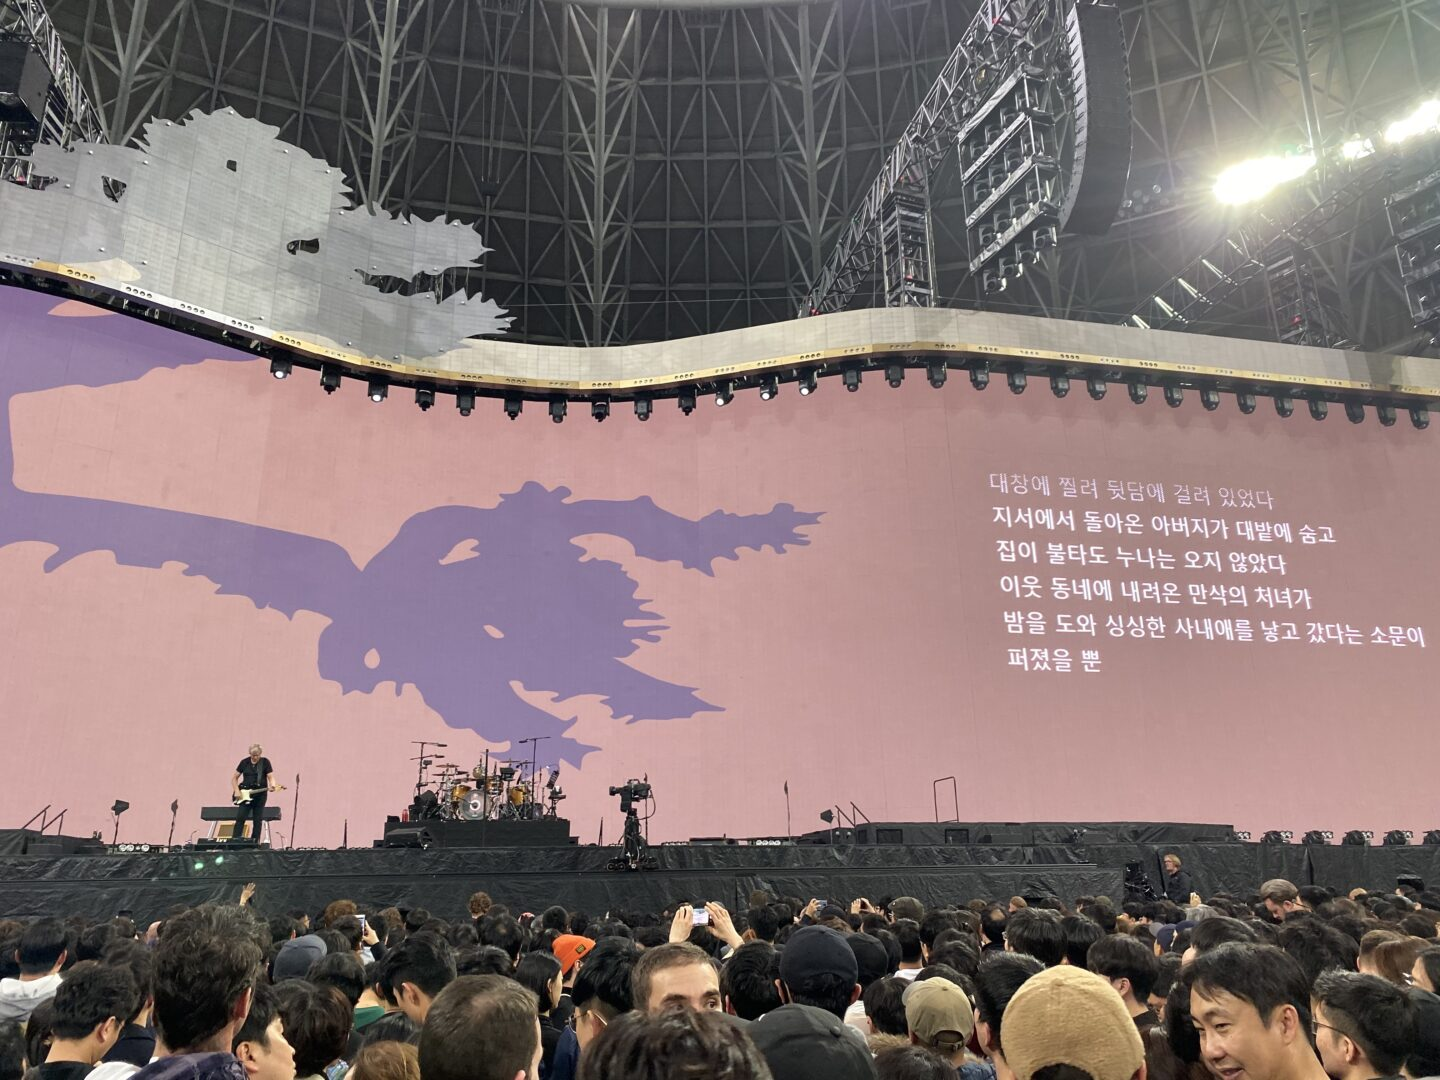 Before the band came on in Seoul